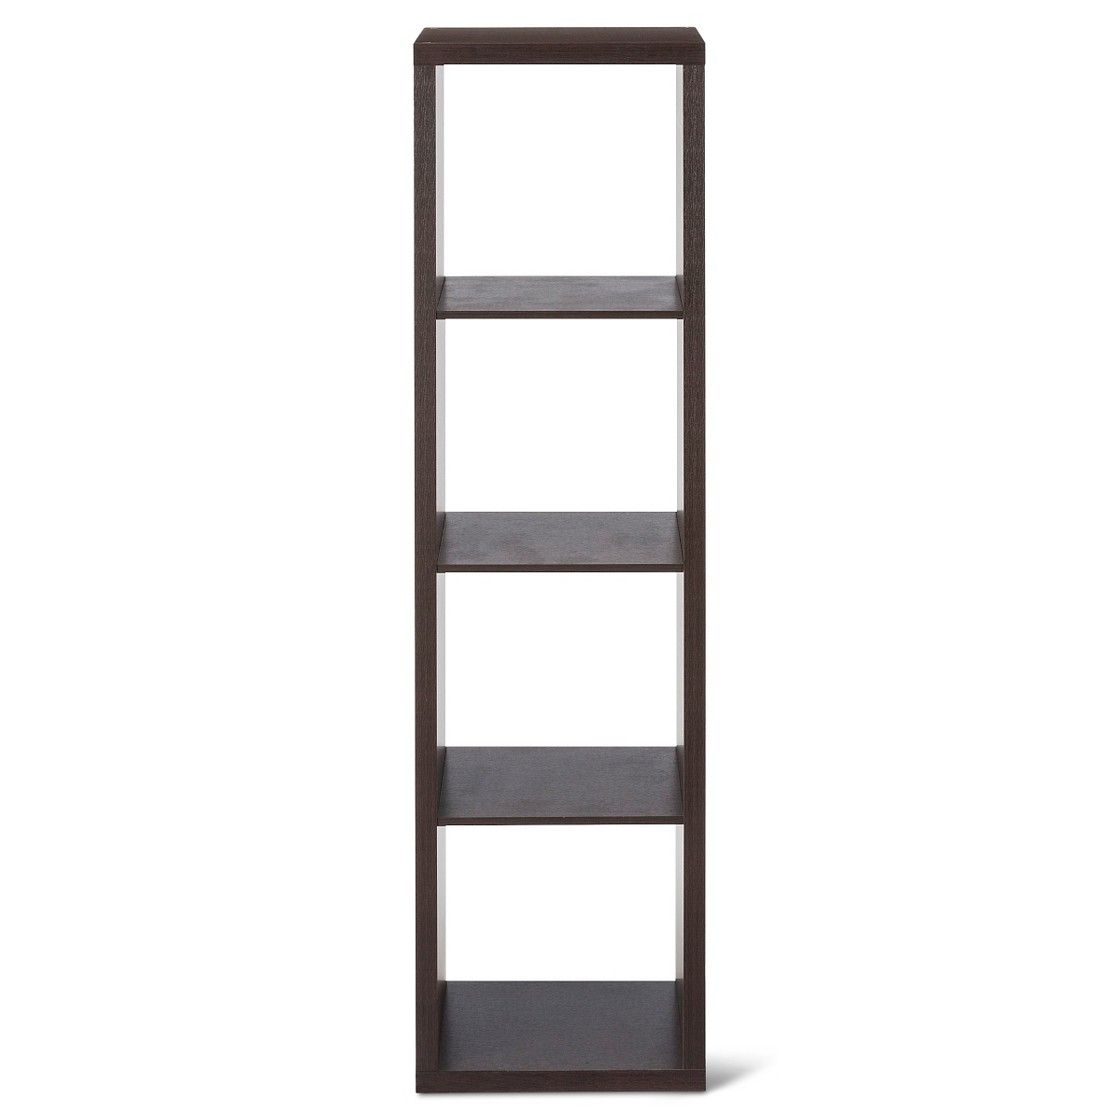 13 4 Cube Vertical Organizer Shelf Brown Threshold Shelf Organization Shelves Cube Shelves